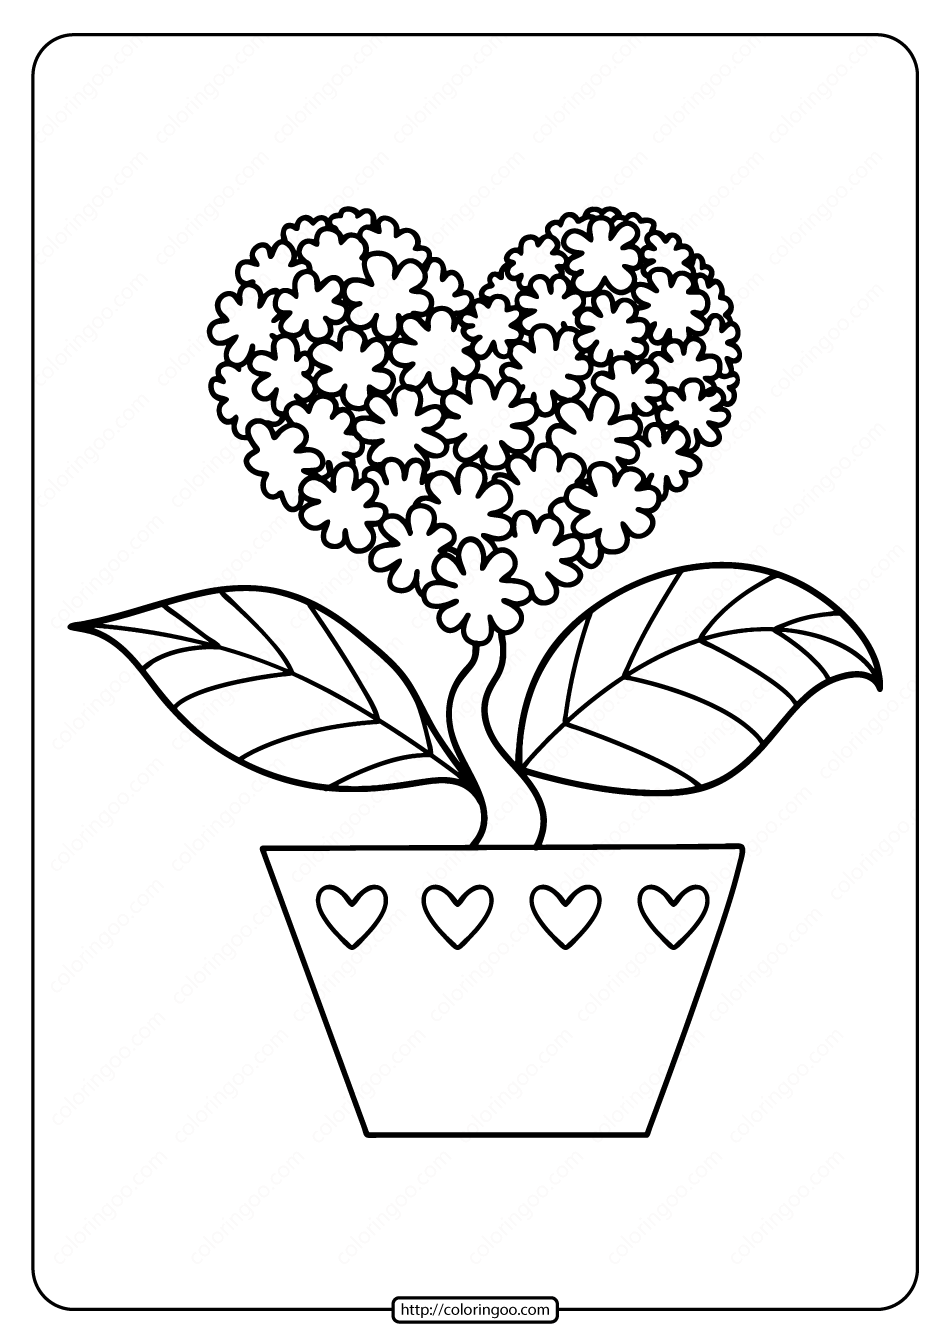 Coloring Pages Of Hearts And Flowers Heart Coloring Pages Love Coloring Pages Flower Coloring Pages